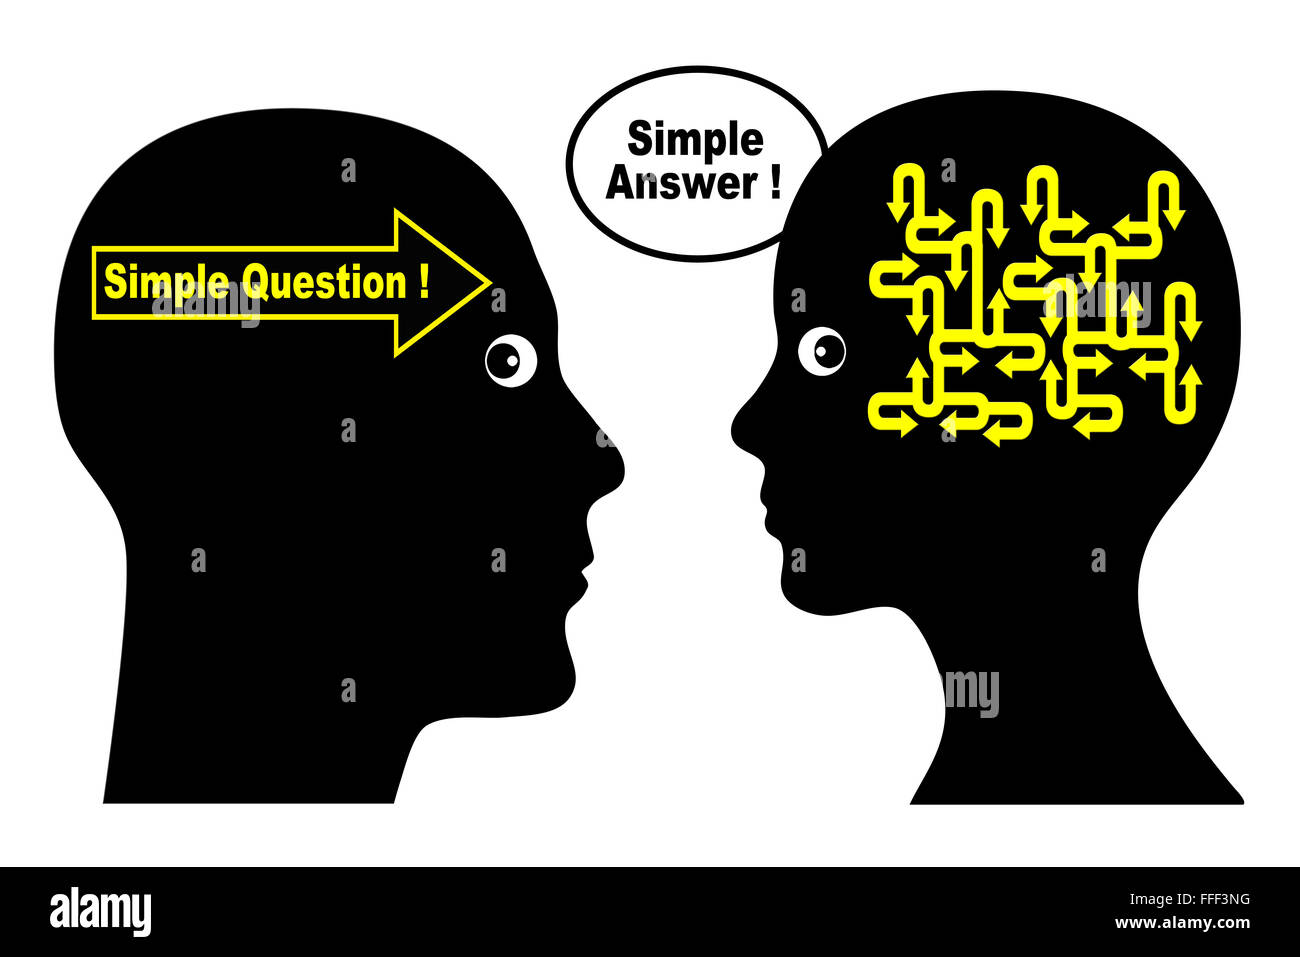 Simple Question Simple Answer Stock Photo